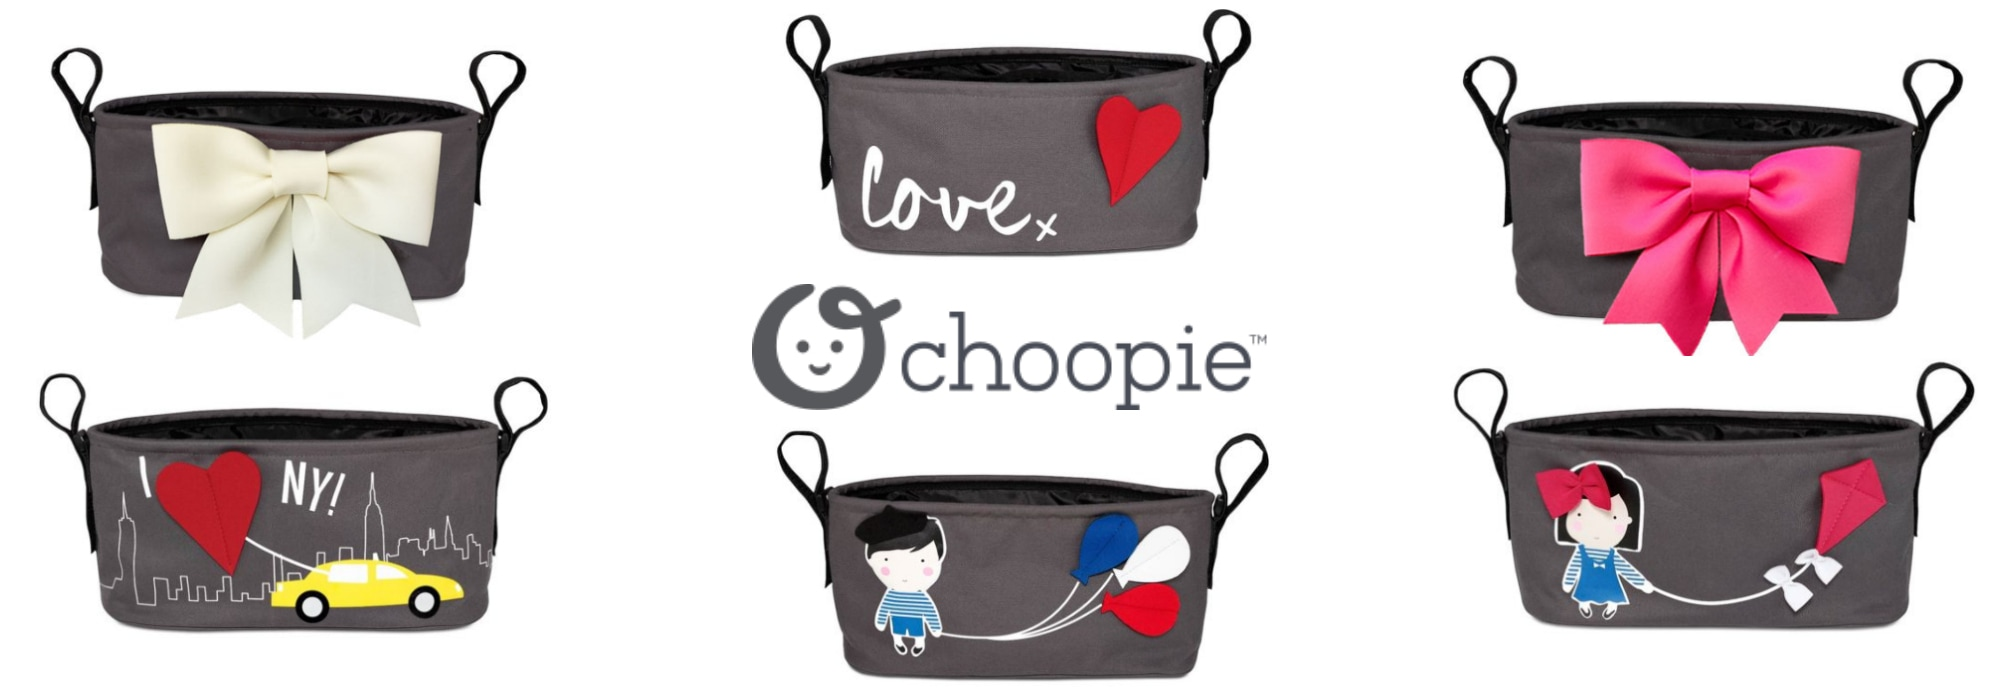 Win a Choopie CityBucket Parent Console in US Japan Fam's $500 value